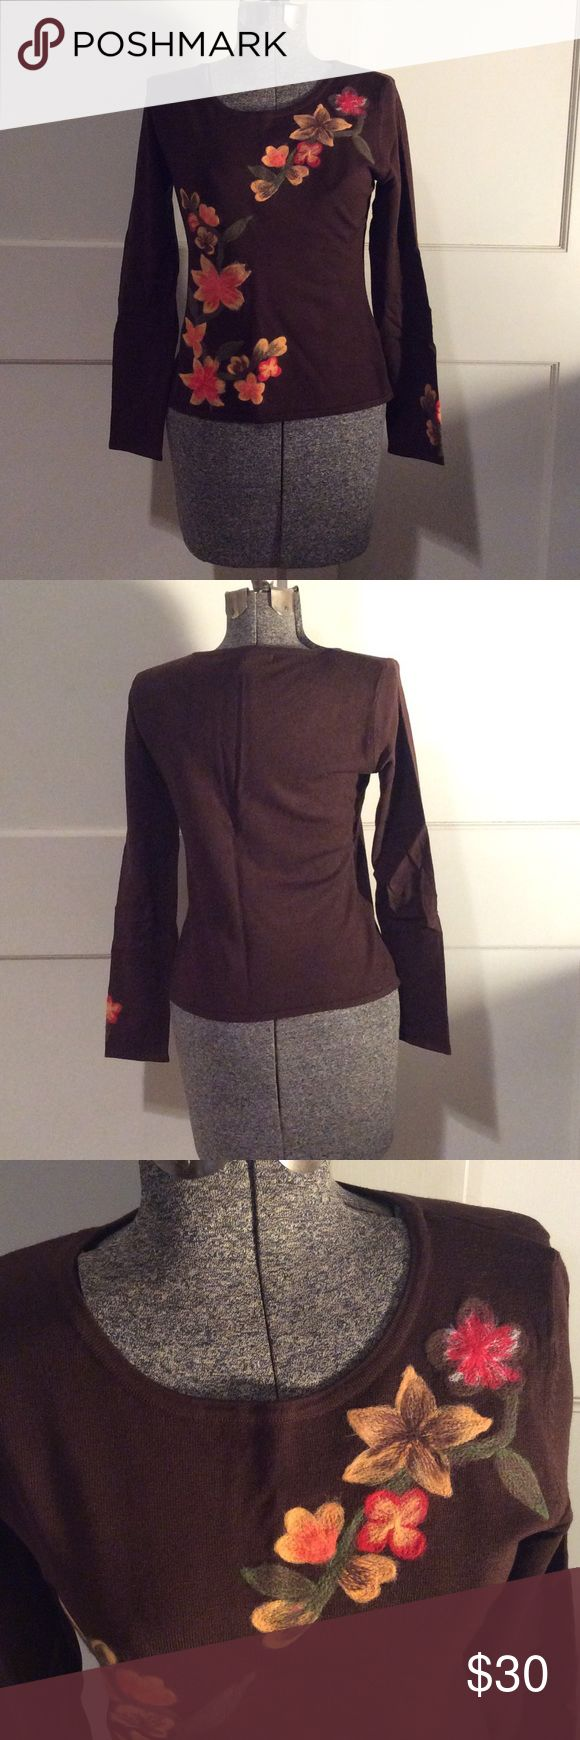 Brown w/ Flowers by Nicole Alexander Perfect condition (sect. 1) Nicole Alexander Sweaters Crew & Scoop Necks